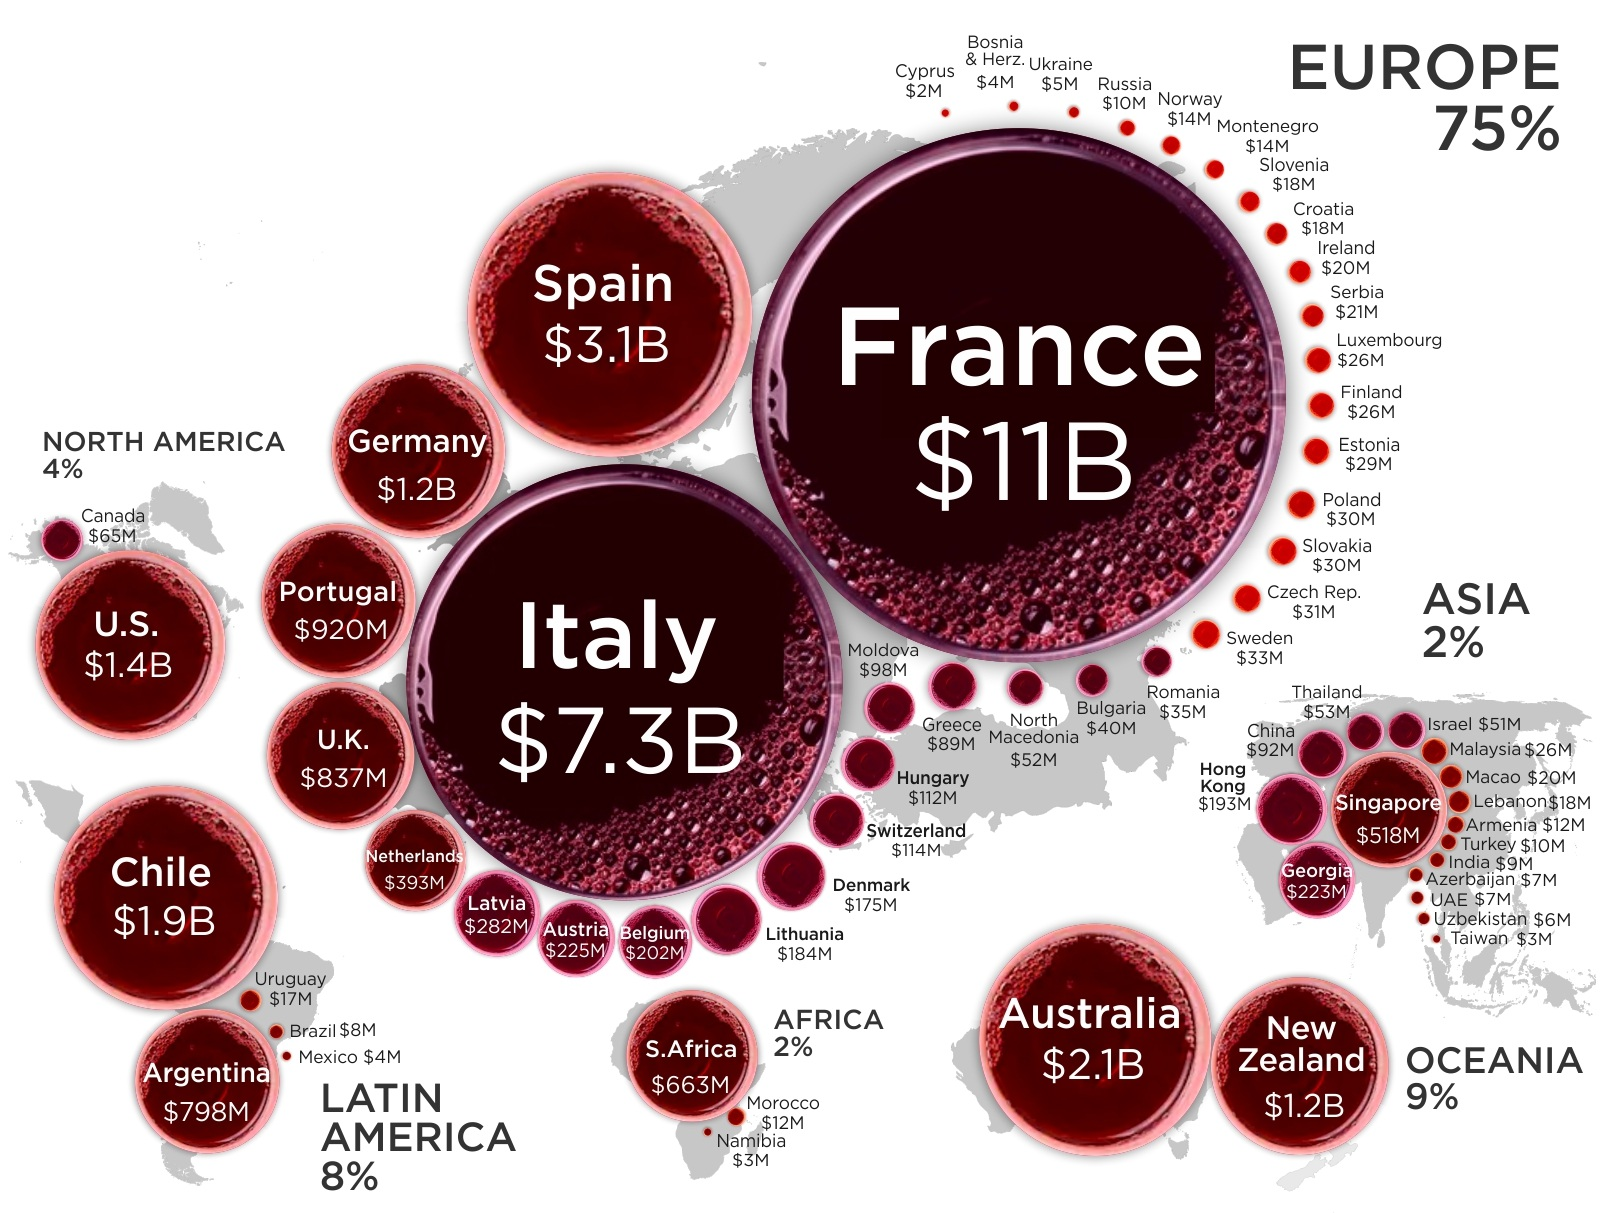 Visualizing Wine Exports by Country